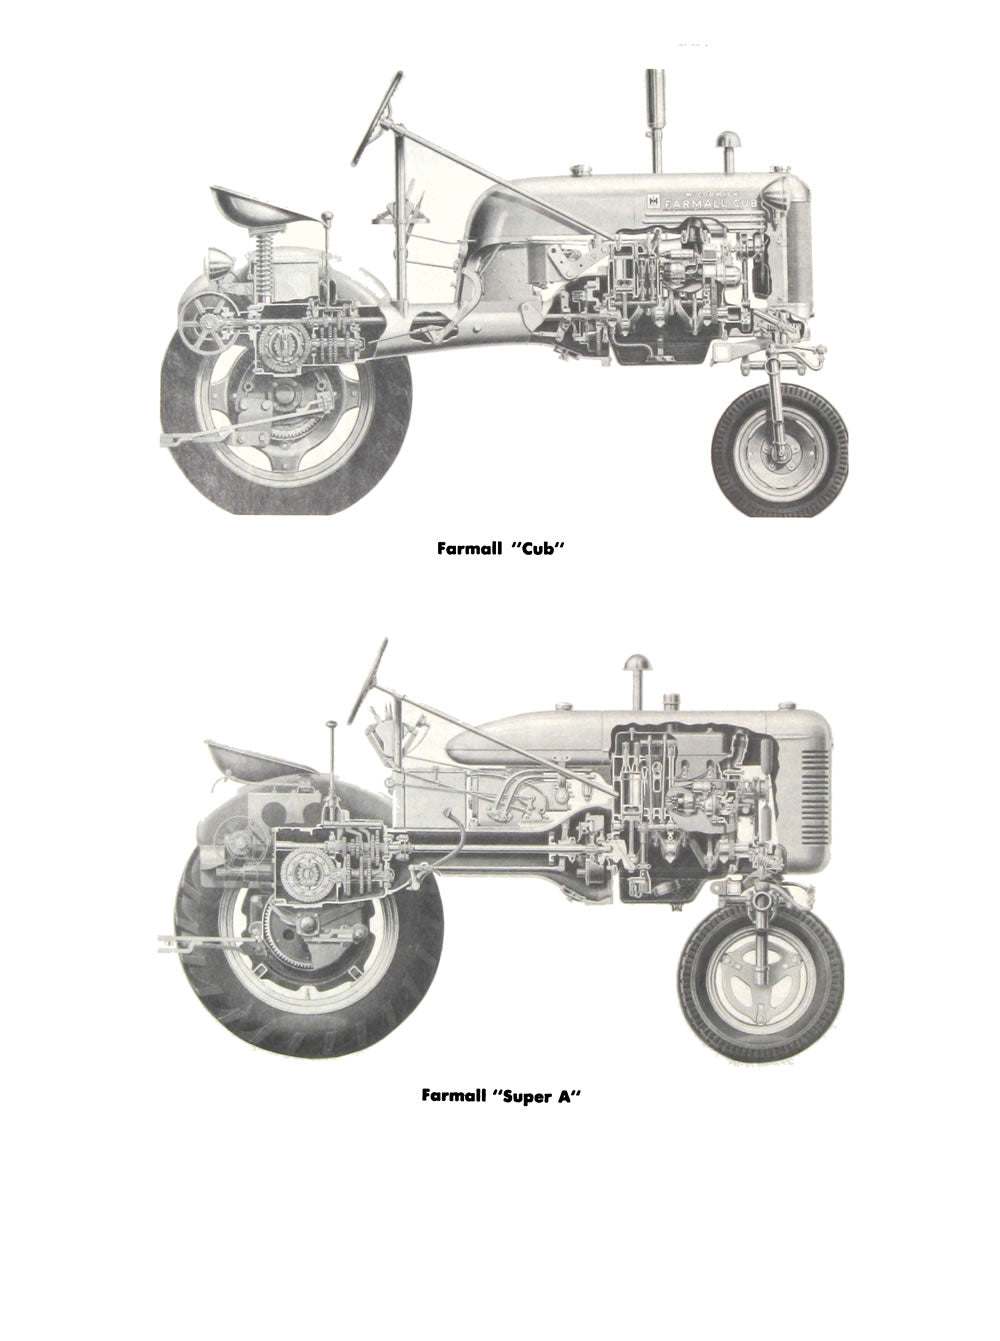 International Harvester Tractor Super And Non Models A B C Farmall Engine Diagrams Additional Pictures Of The